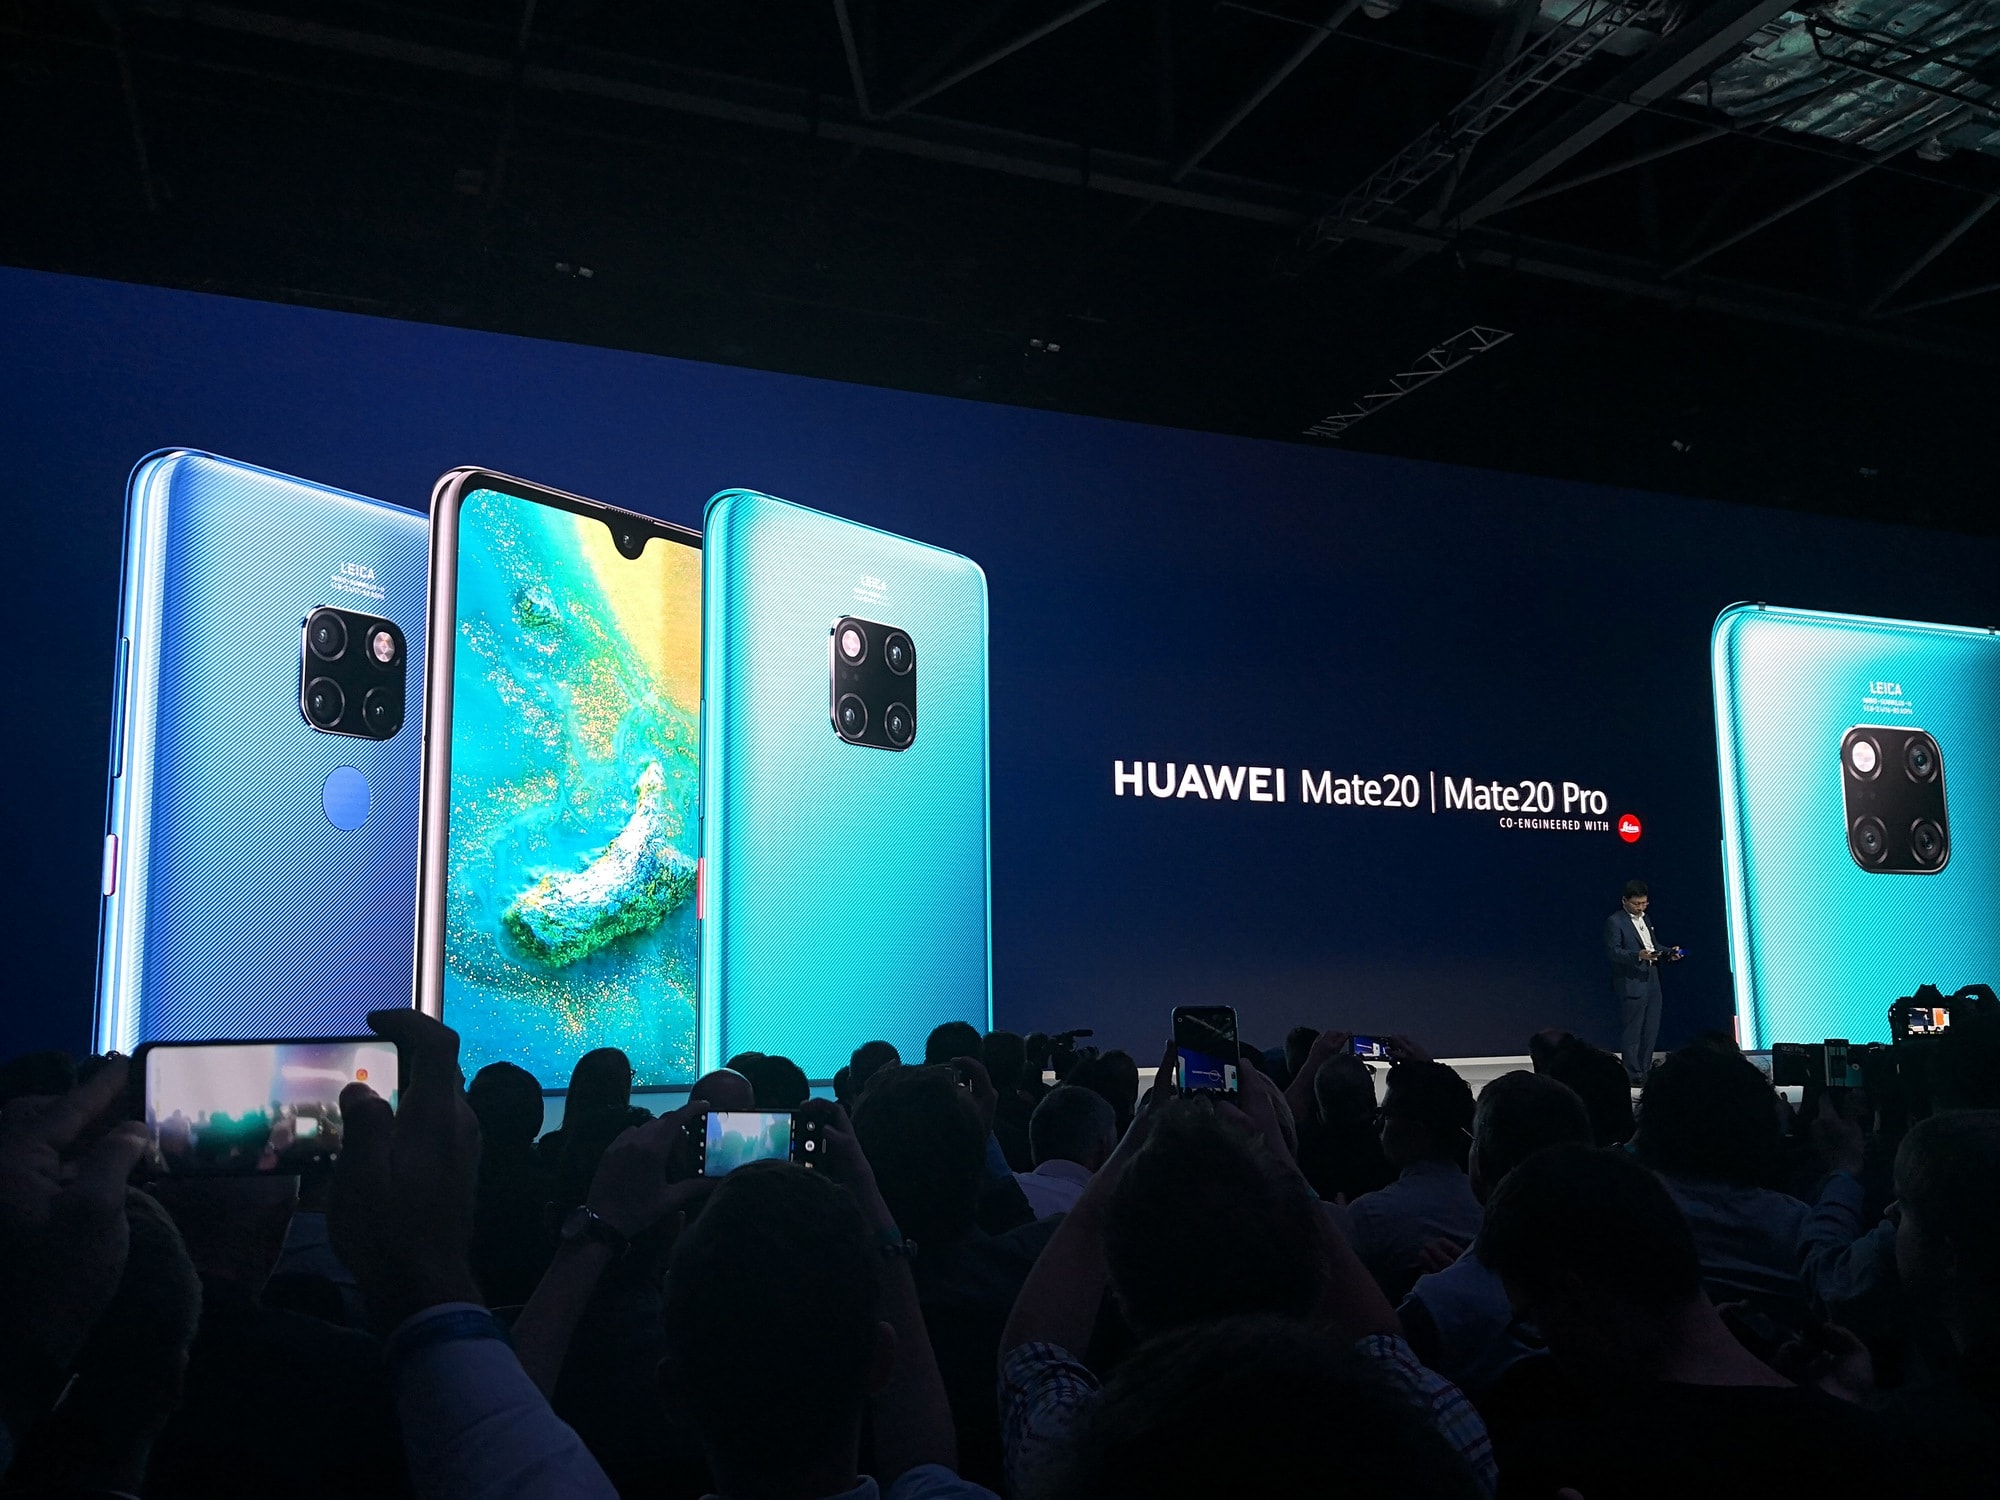 Huawei pins hopes for growth on Mate 20 Pro